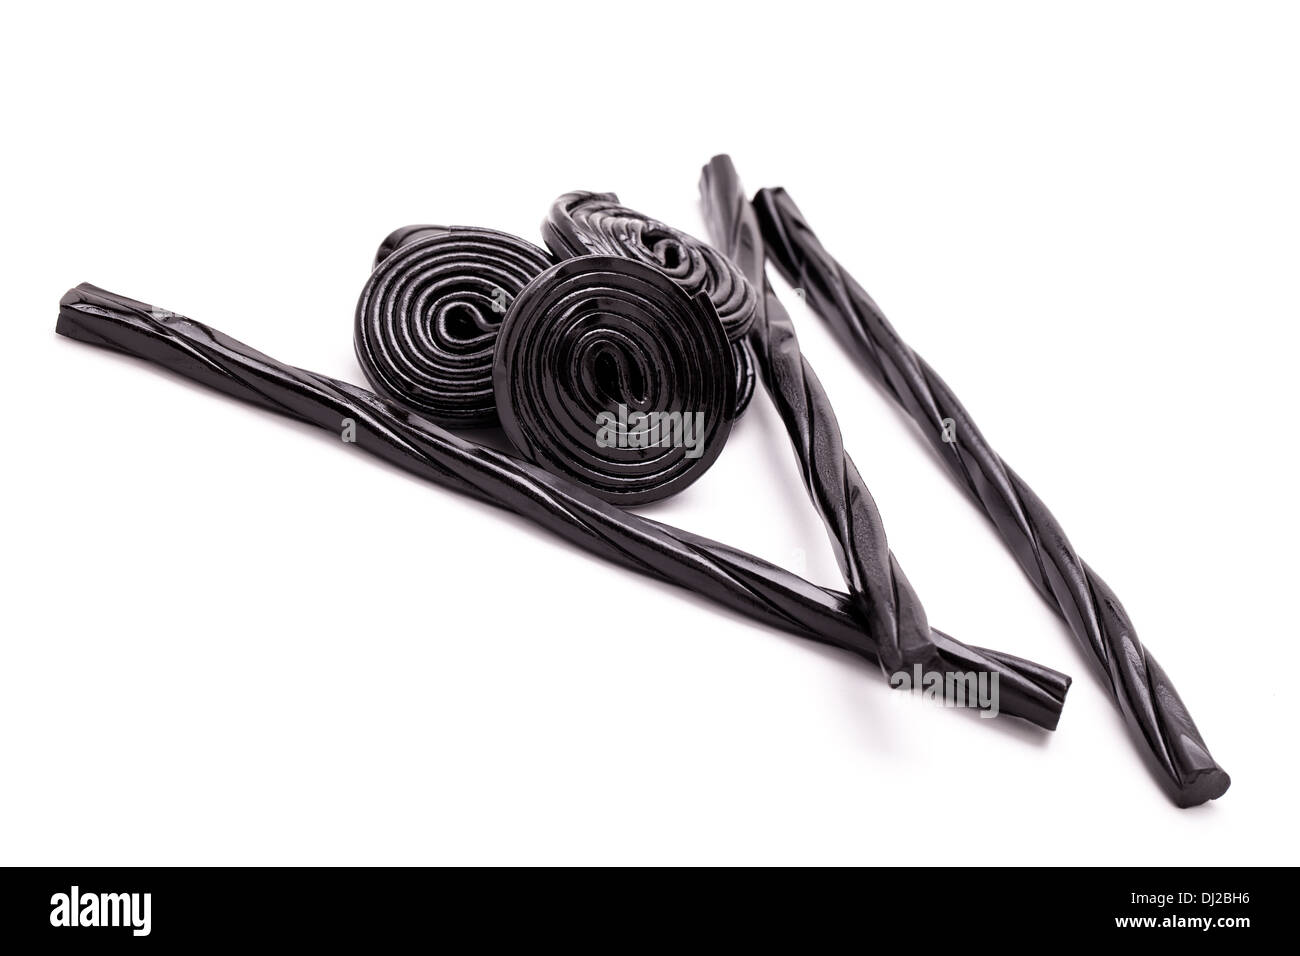 Licorice Spirals And Sticks - Stock Image